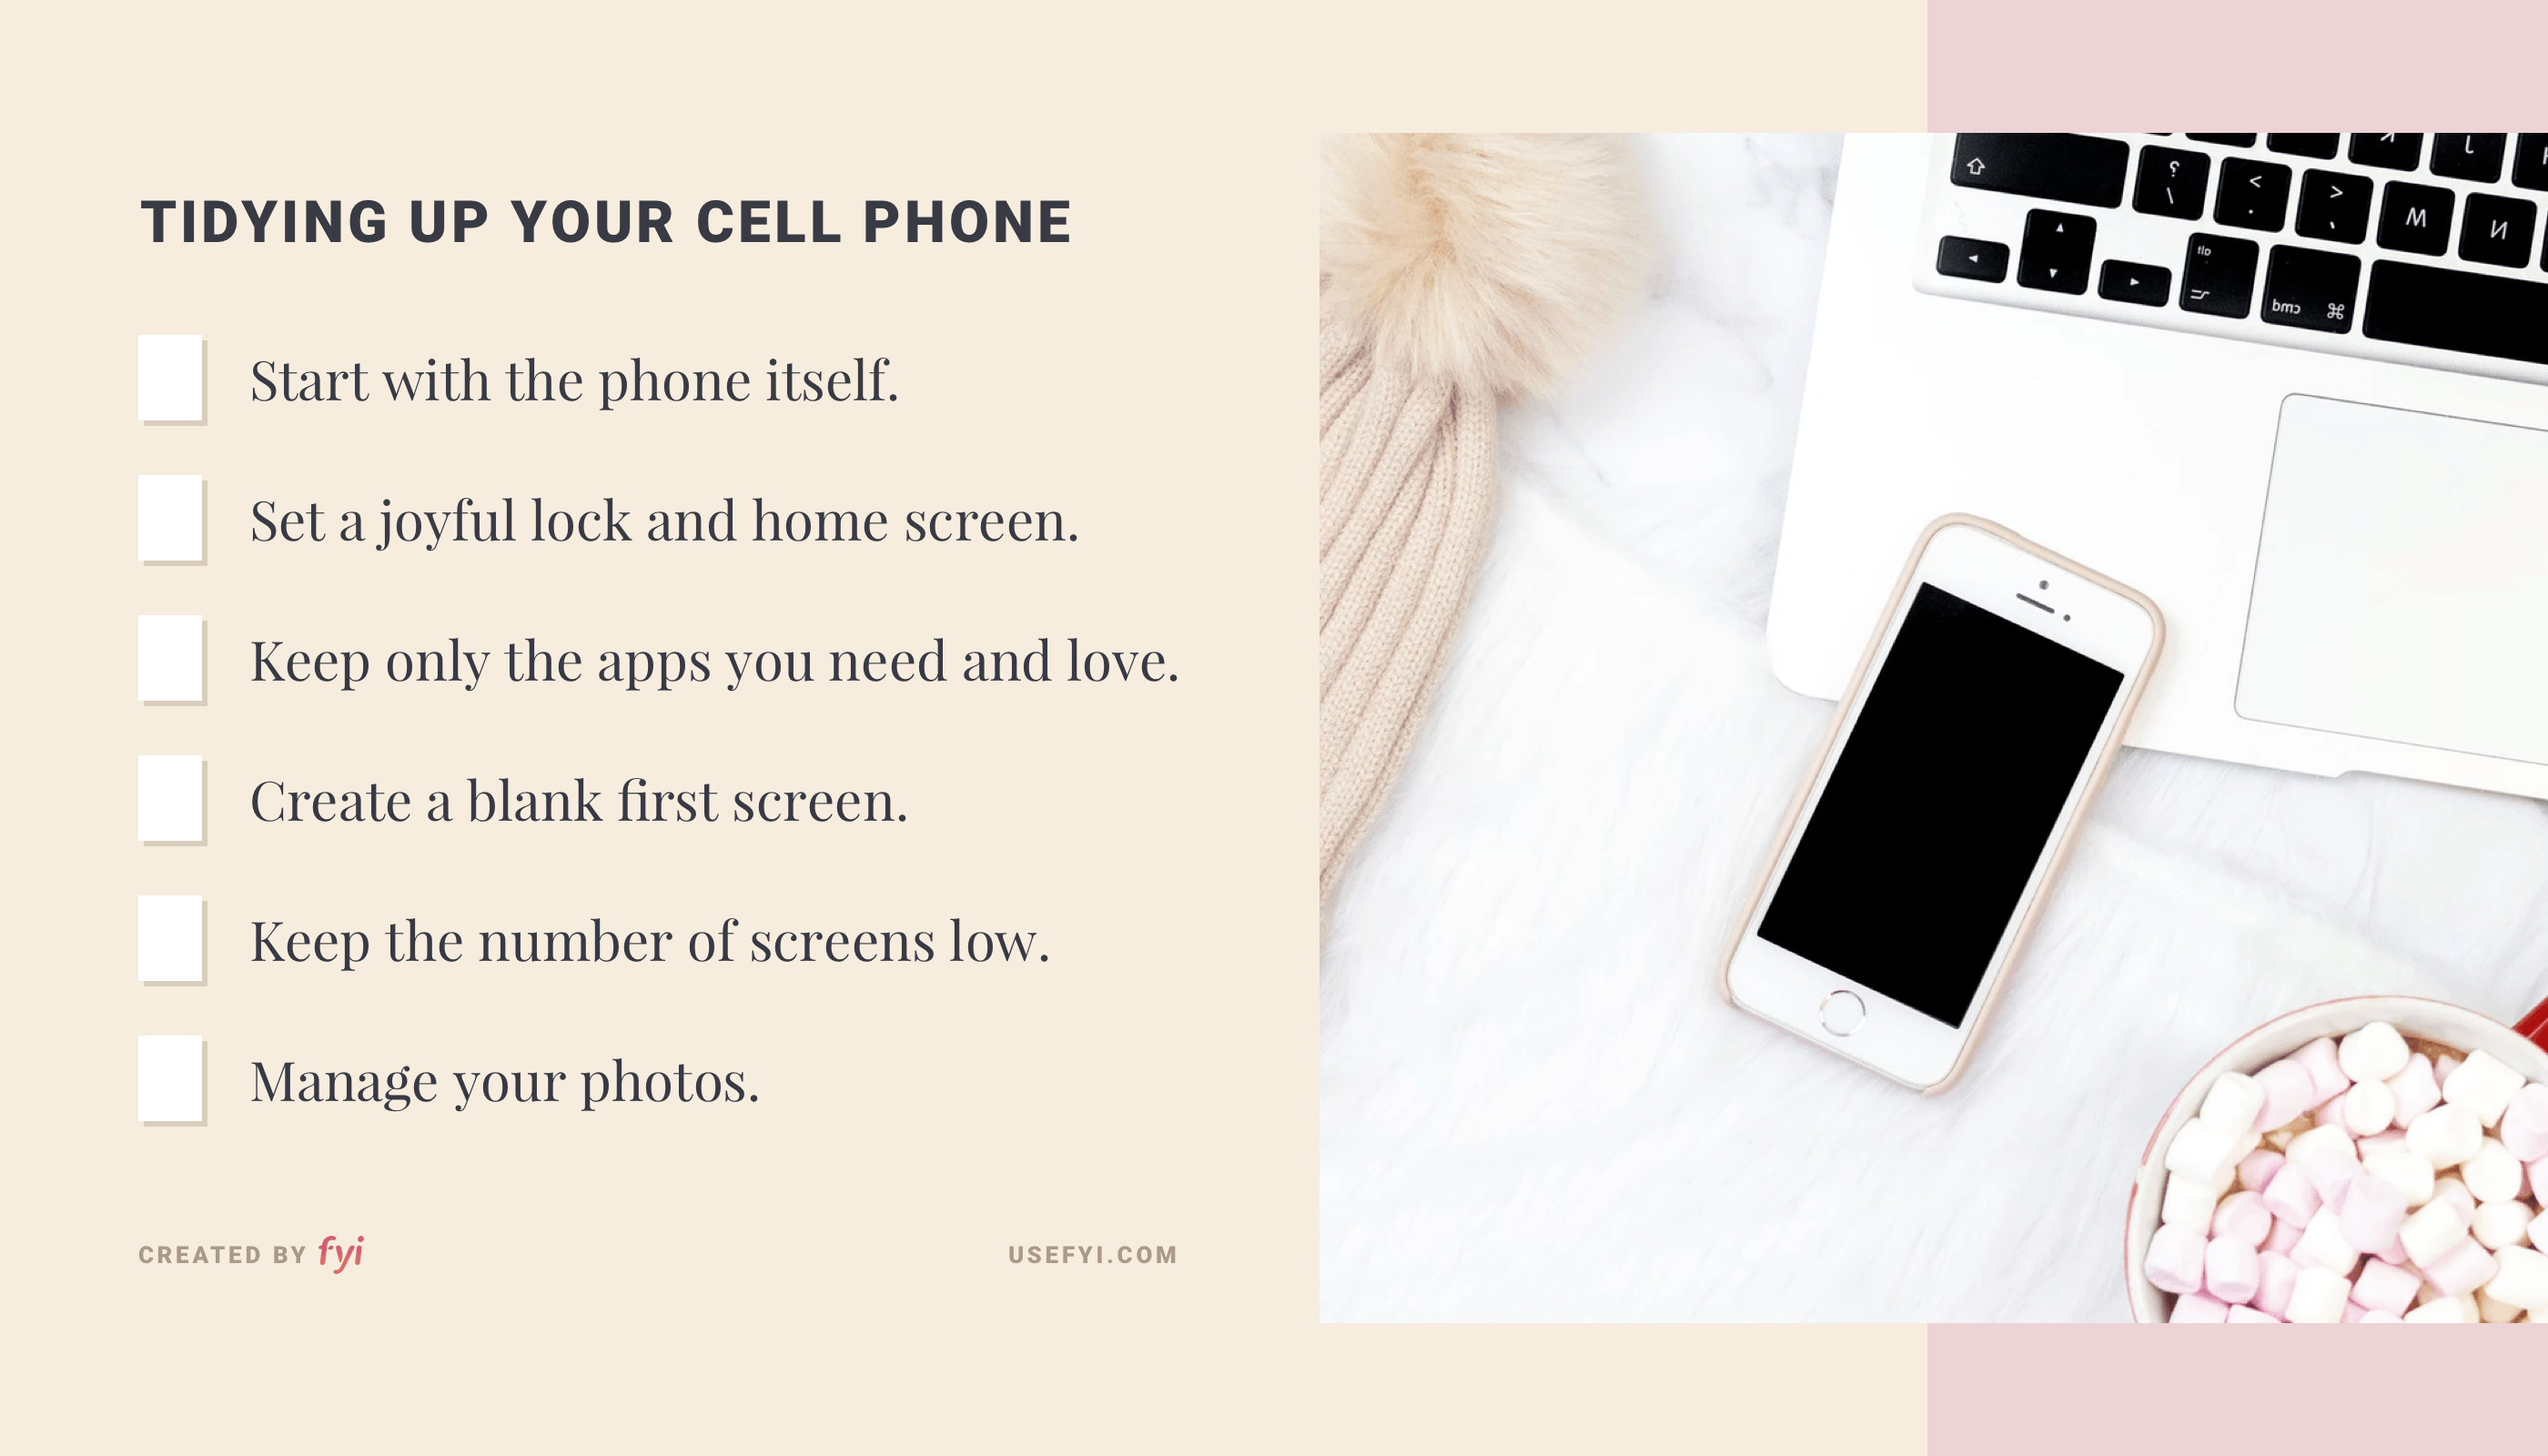 Tidying up your cell phone